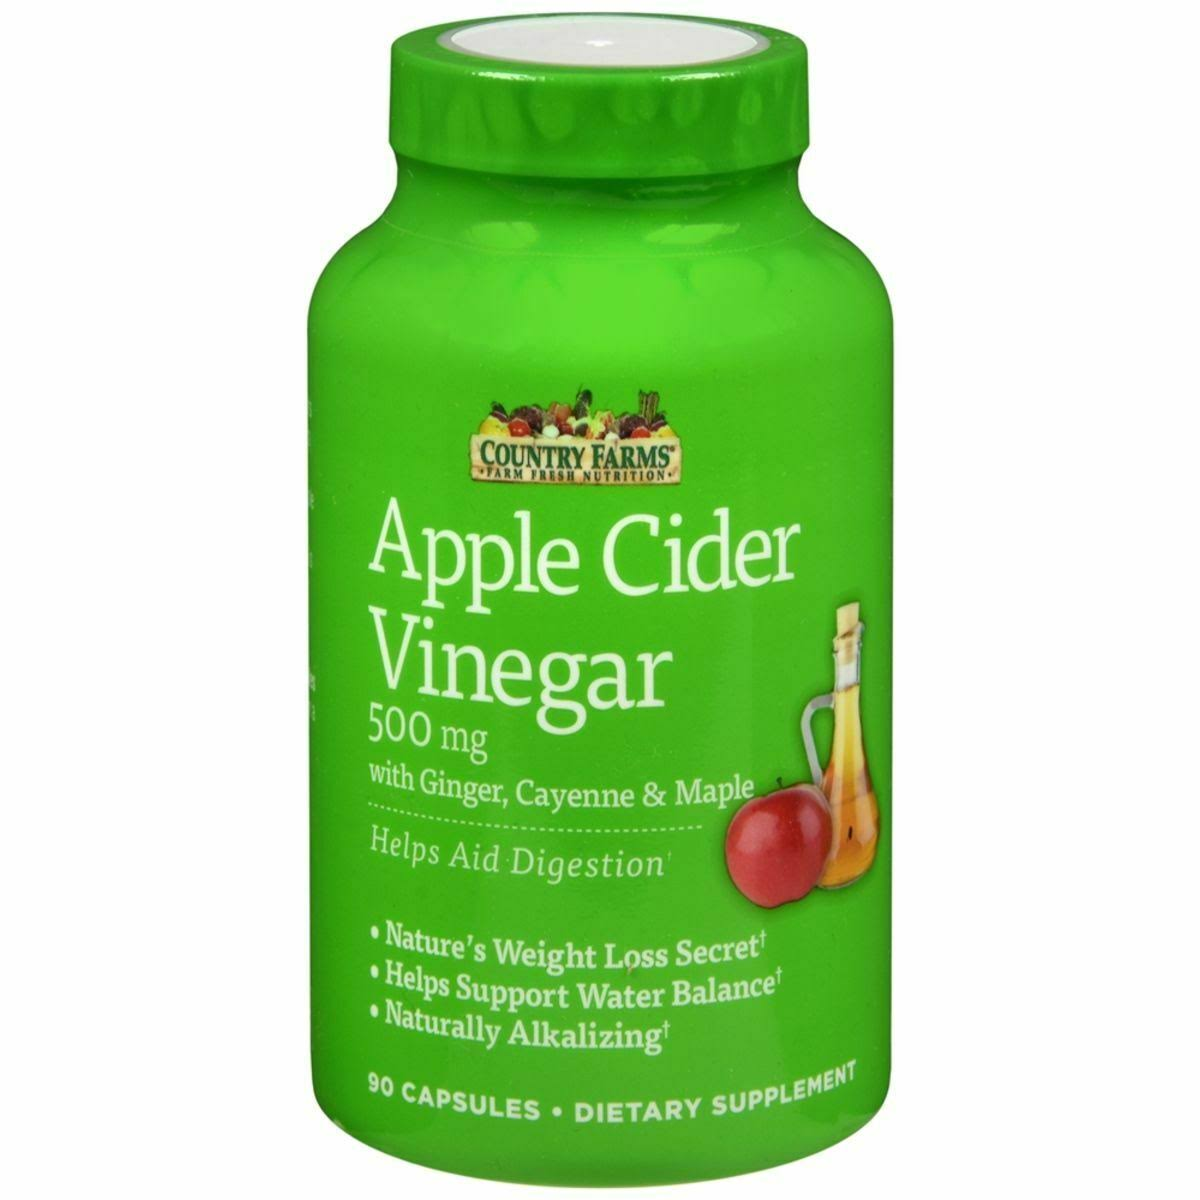 Country Farms Apple Cider Vinegar Supplement - 500mg, 90 Capsules